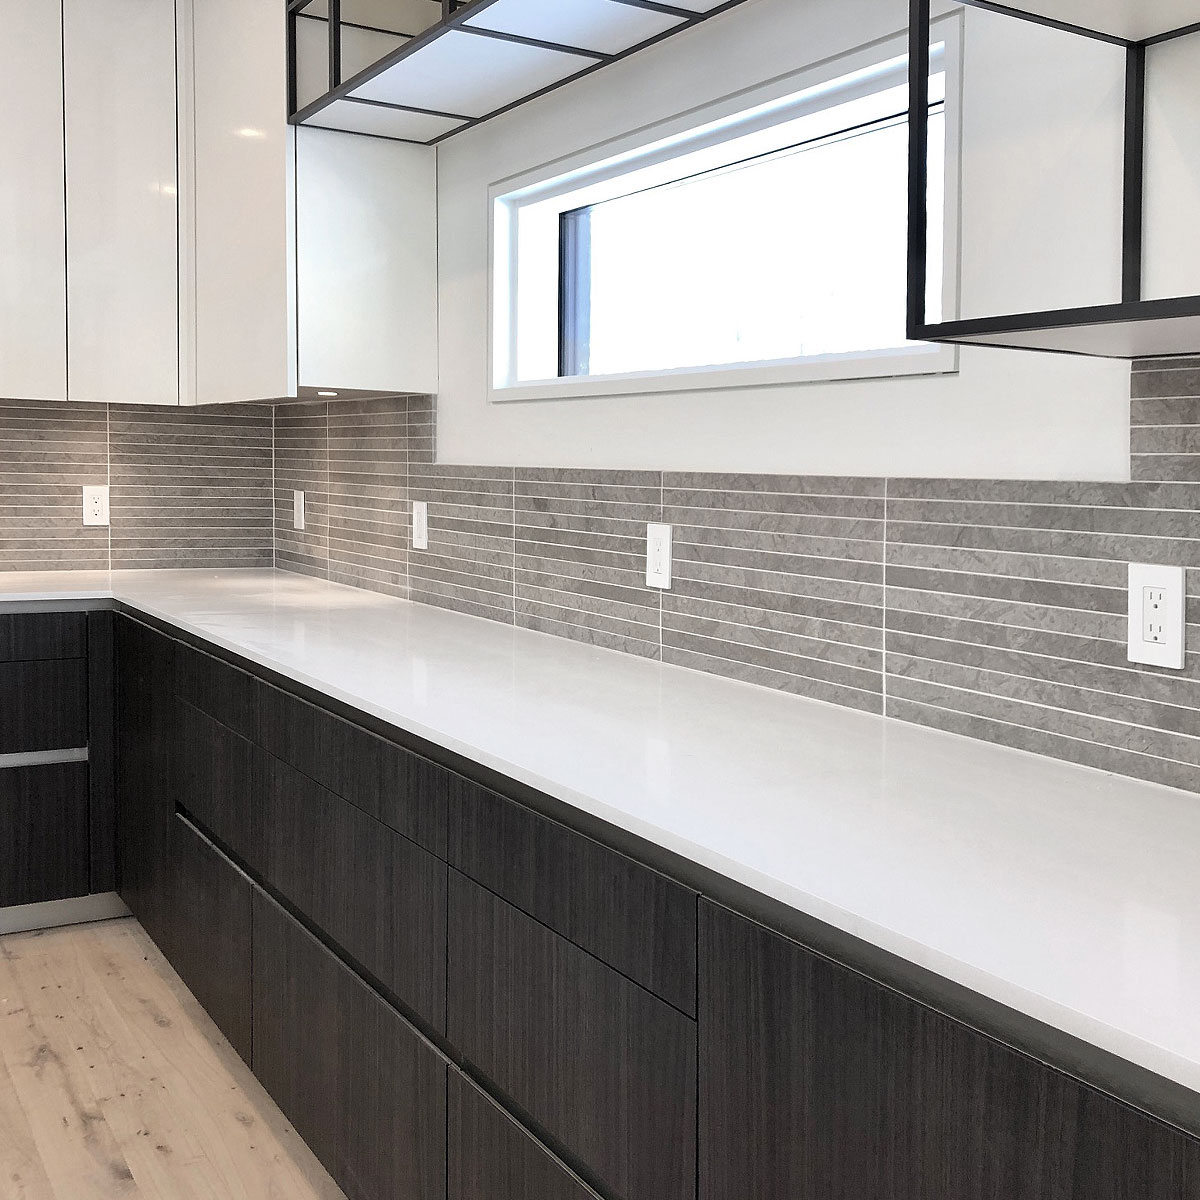 MODERN Light Gray Subway Backsplash Tile (Contemporary ...